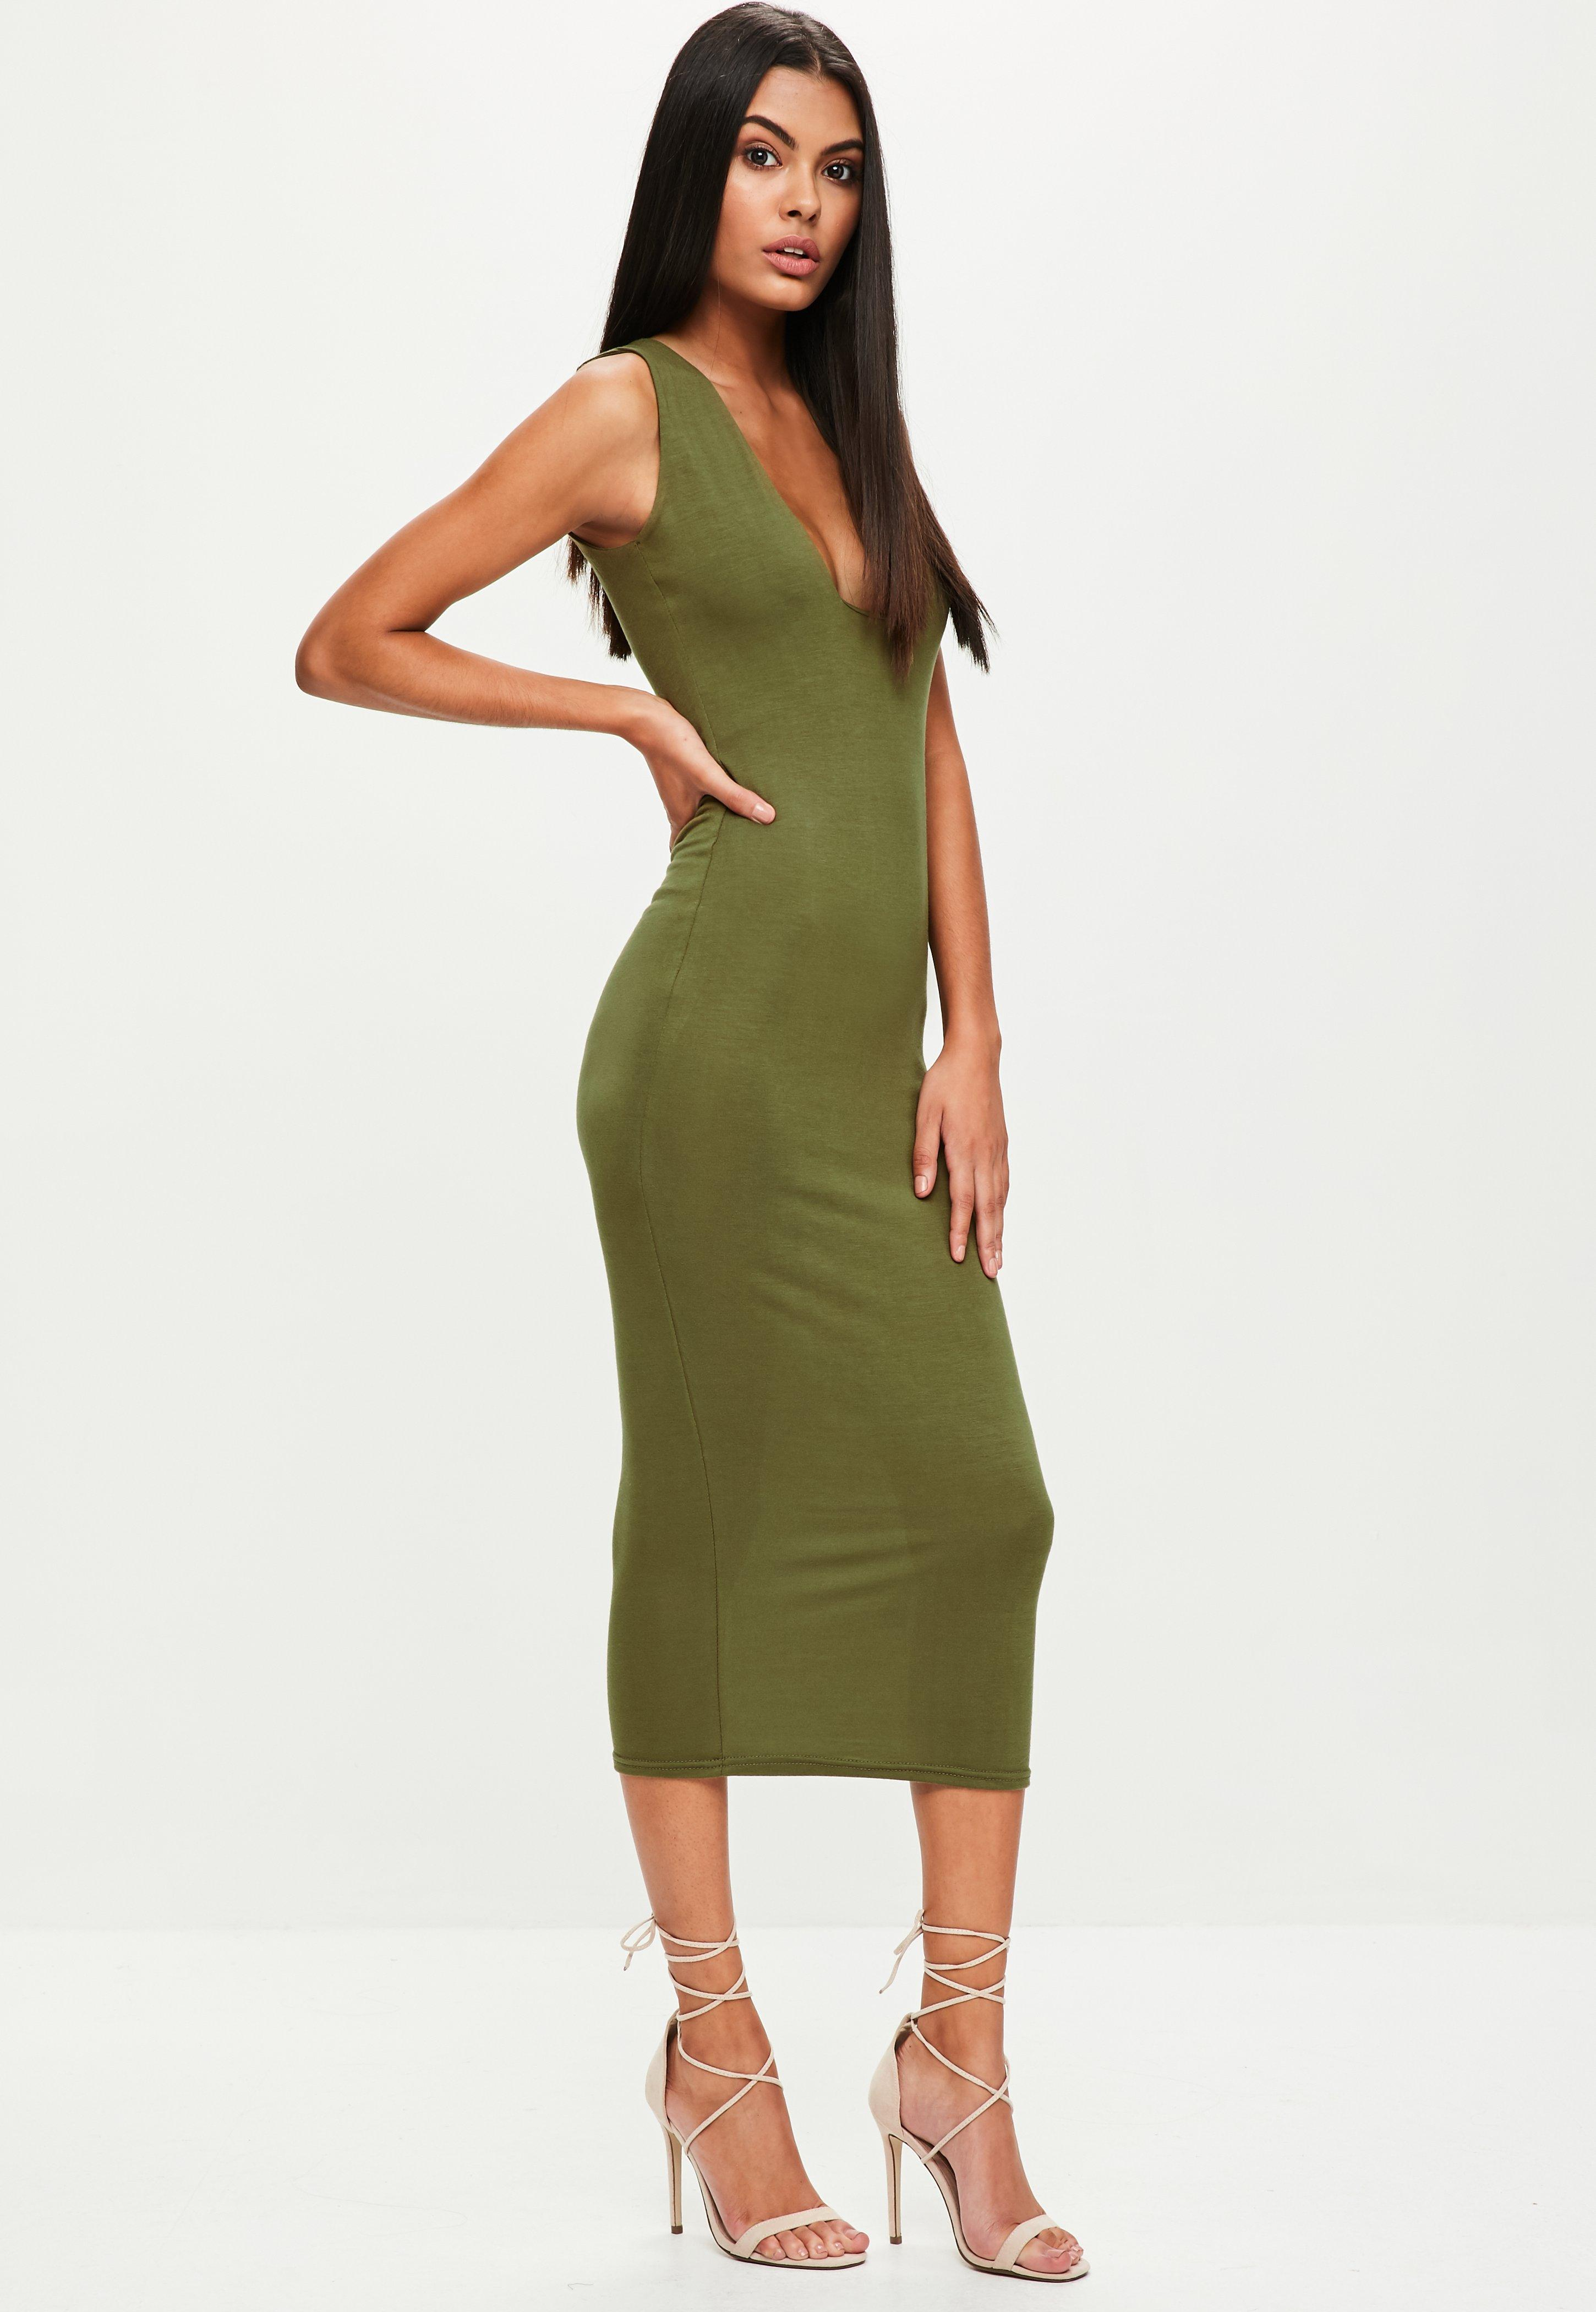 b596fcd88c Lyst - Missguided Khaki Jersey Square Neck Dress in Green